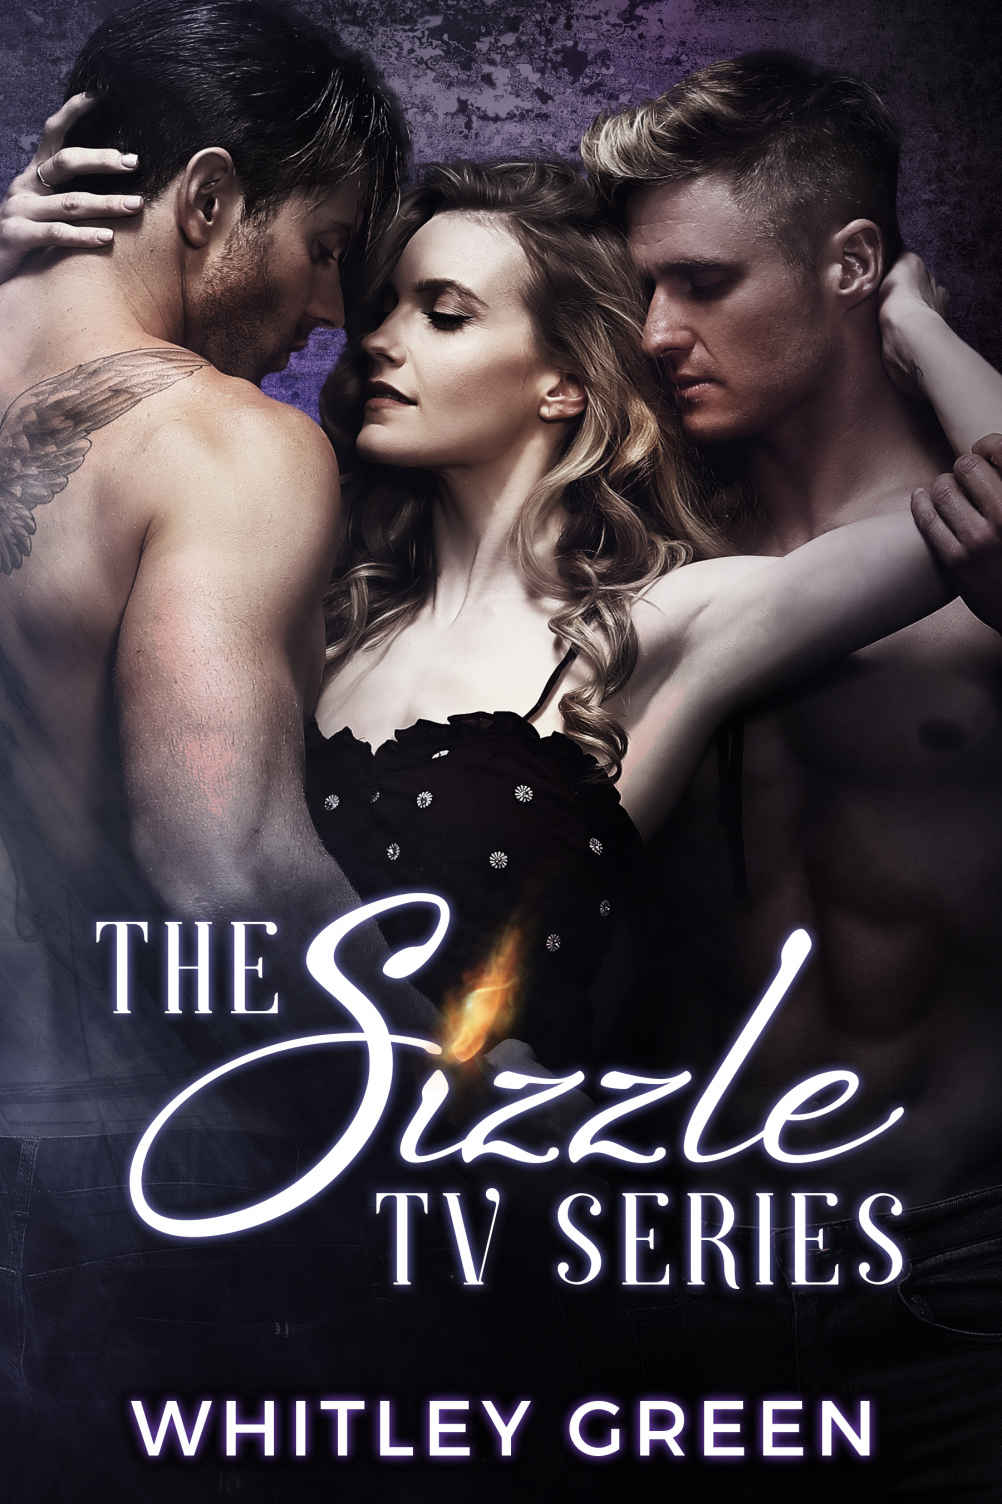 THE SIZZLE TV SERIES